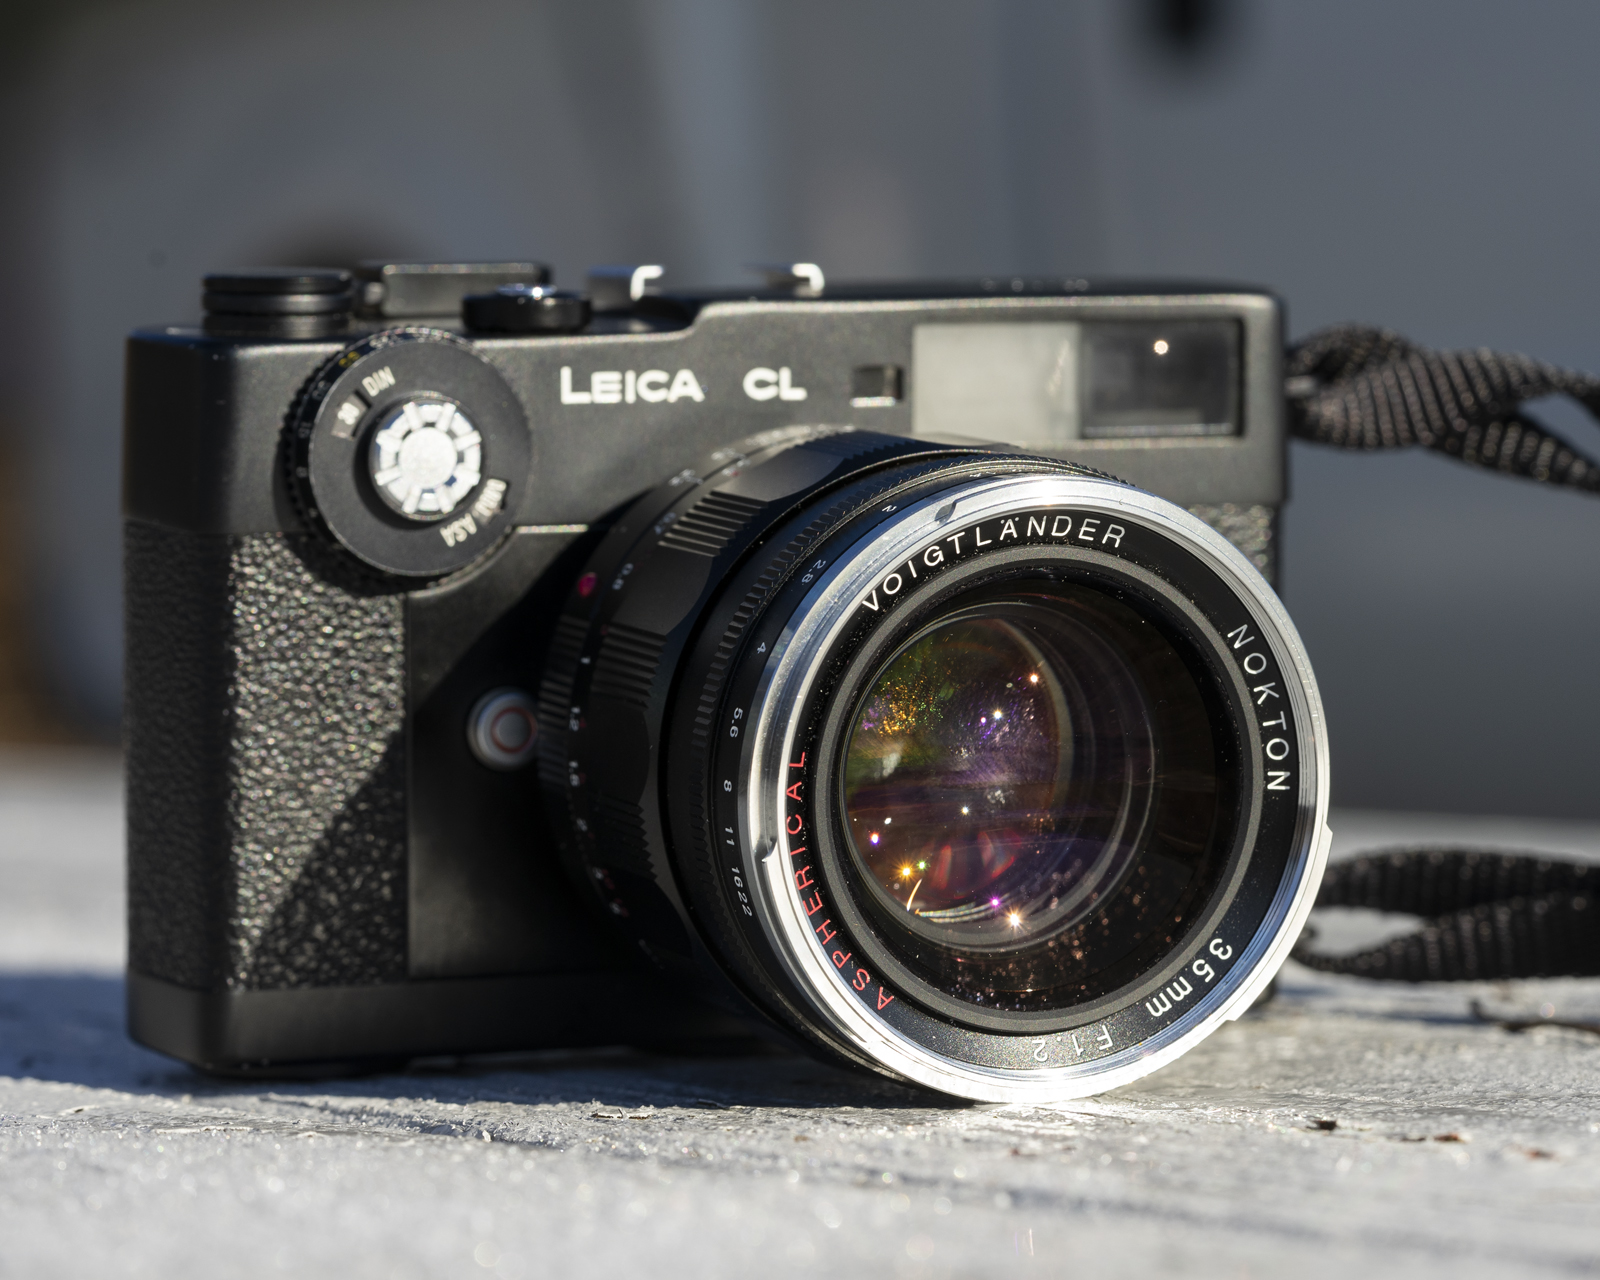 Voigtlander 35mm Nokton f/1.2 Mini-Review - One of the fastest 35's around - By Ryan HK